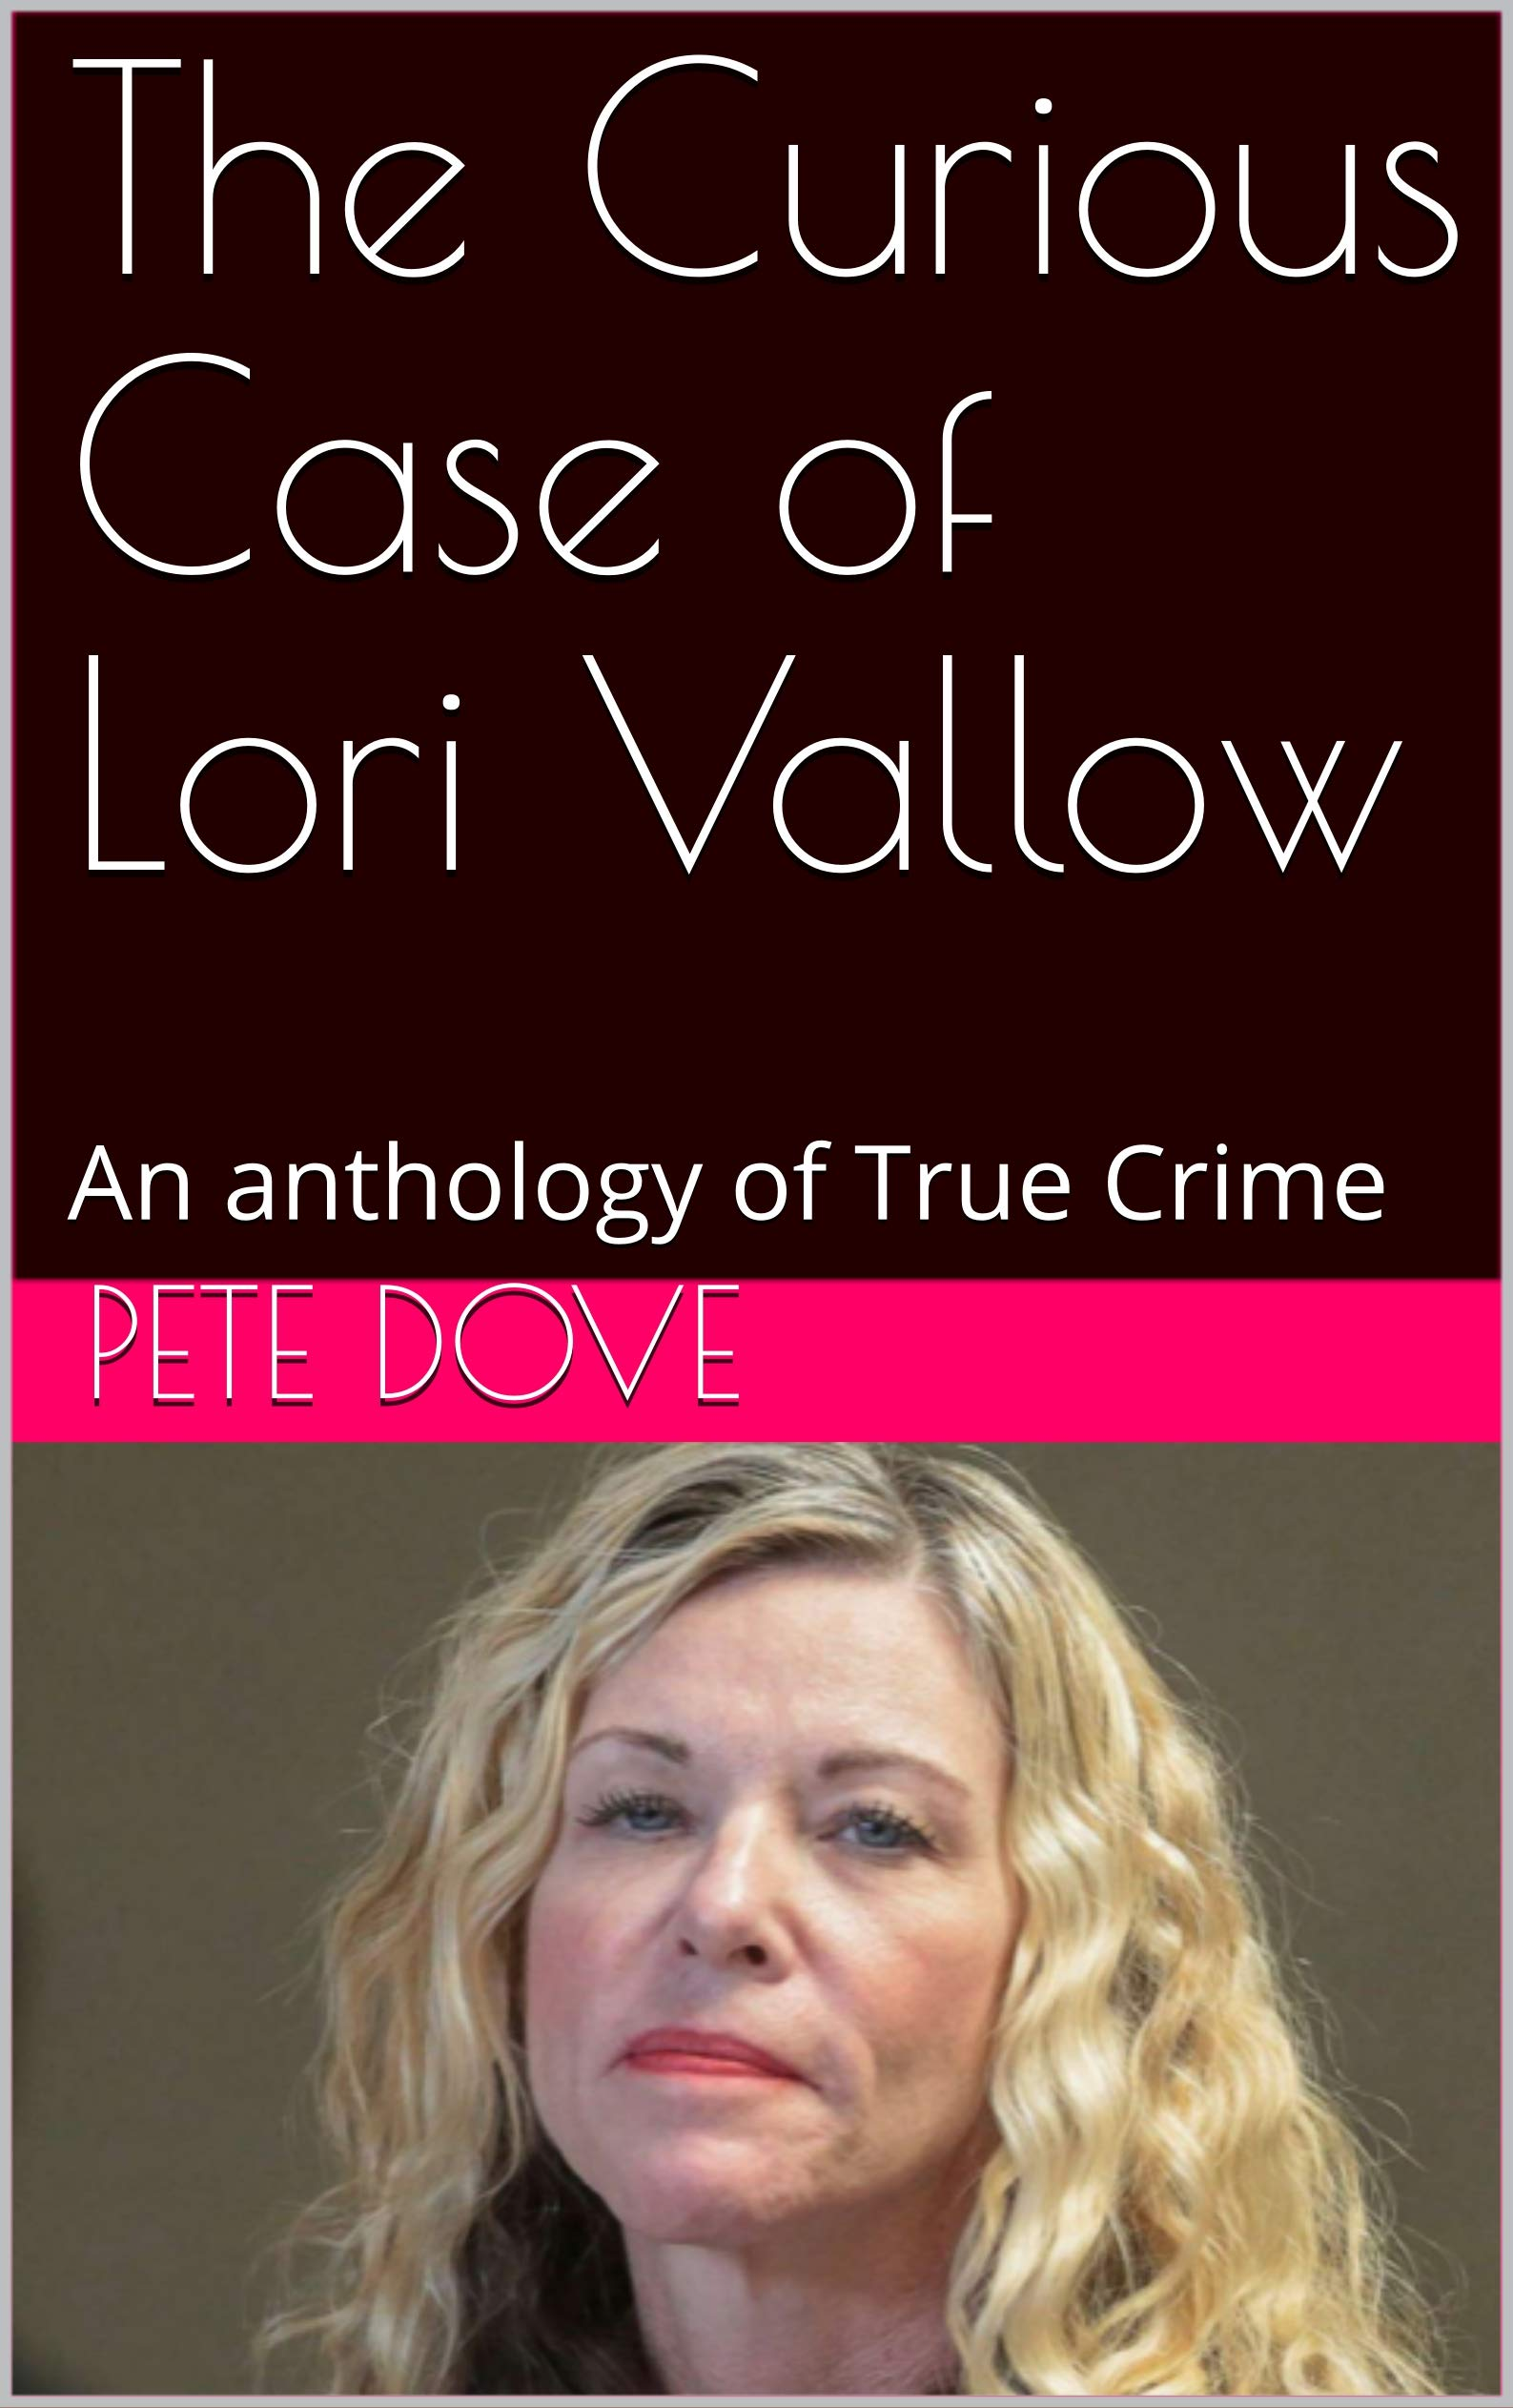 The Curious Case of Lori Vallow: An anthology of True Crime